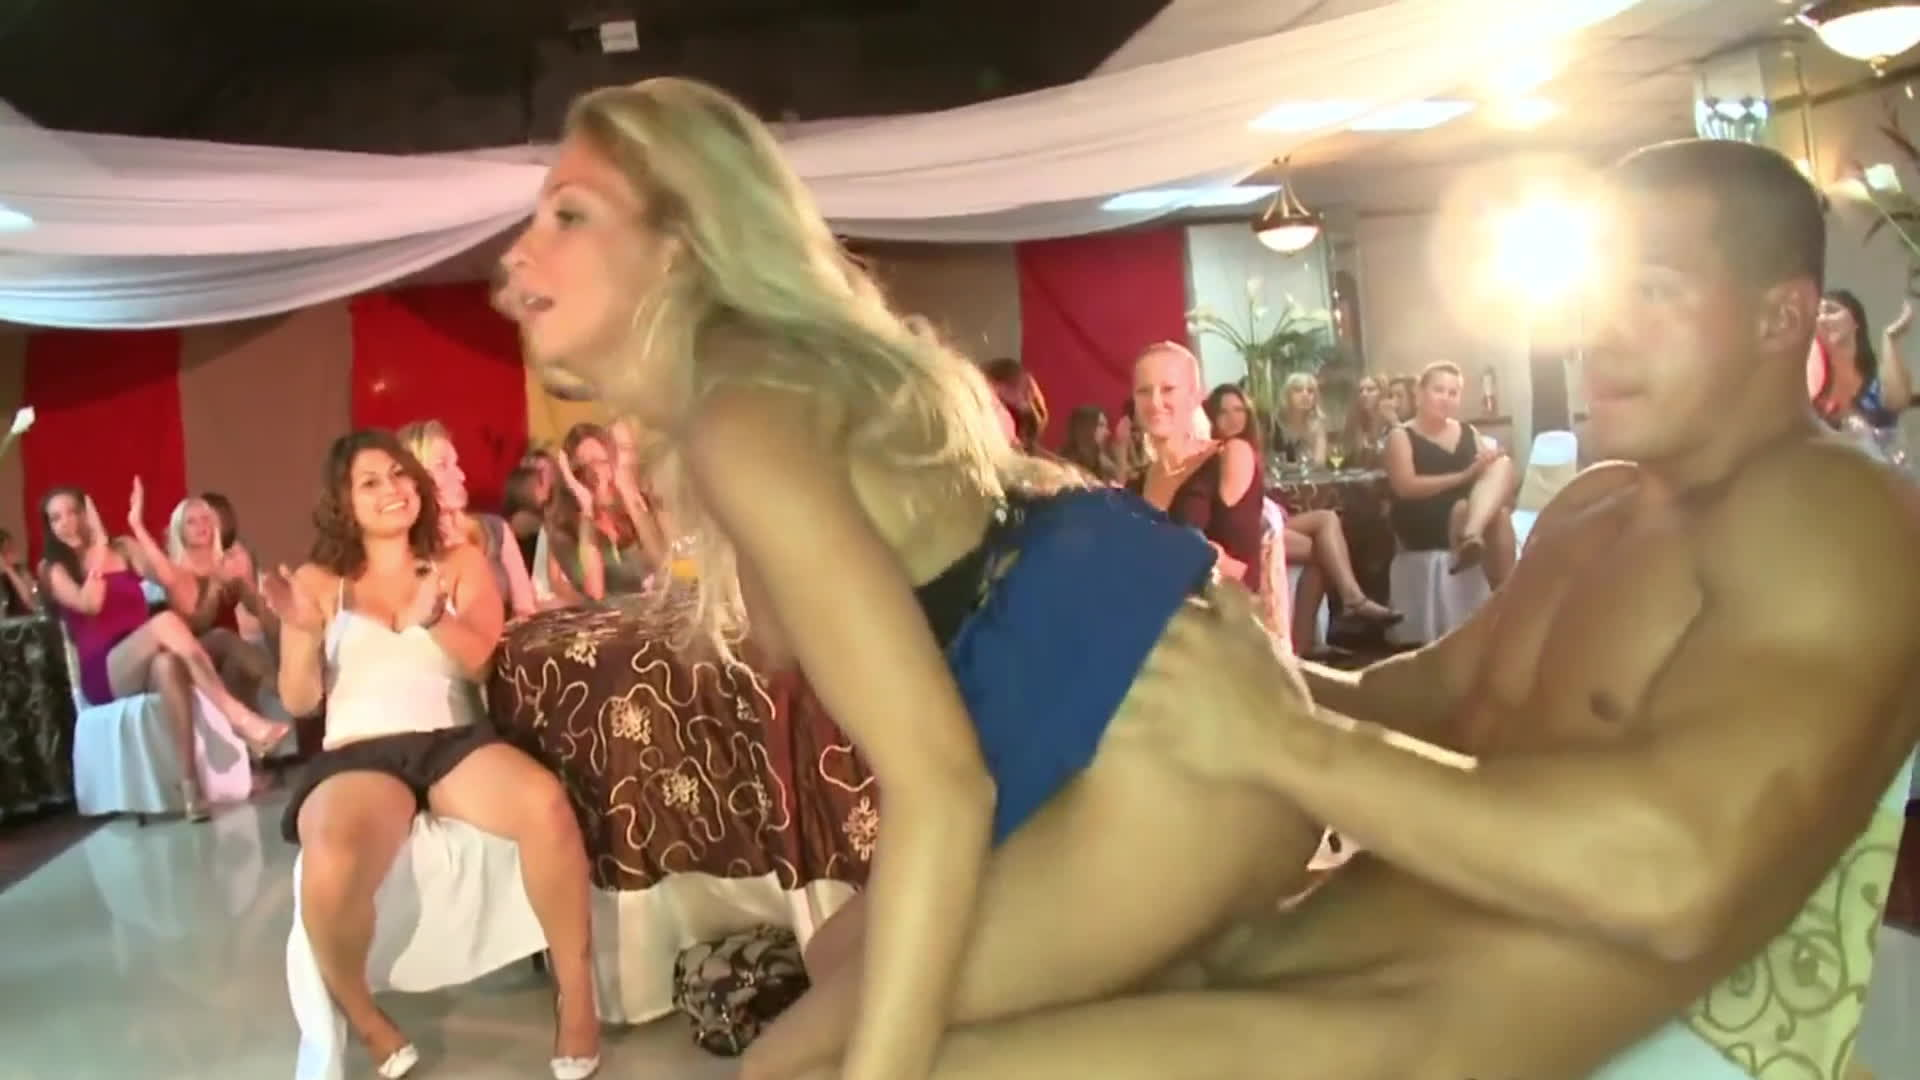 Cute blonde having sex in front of audience